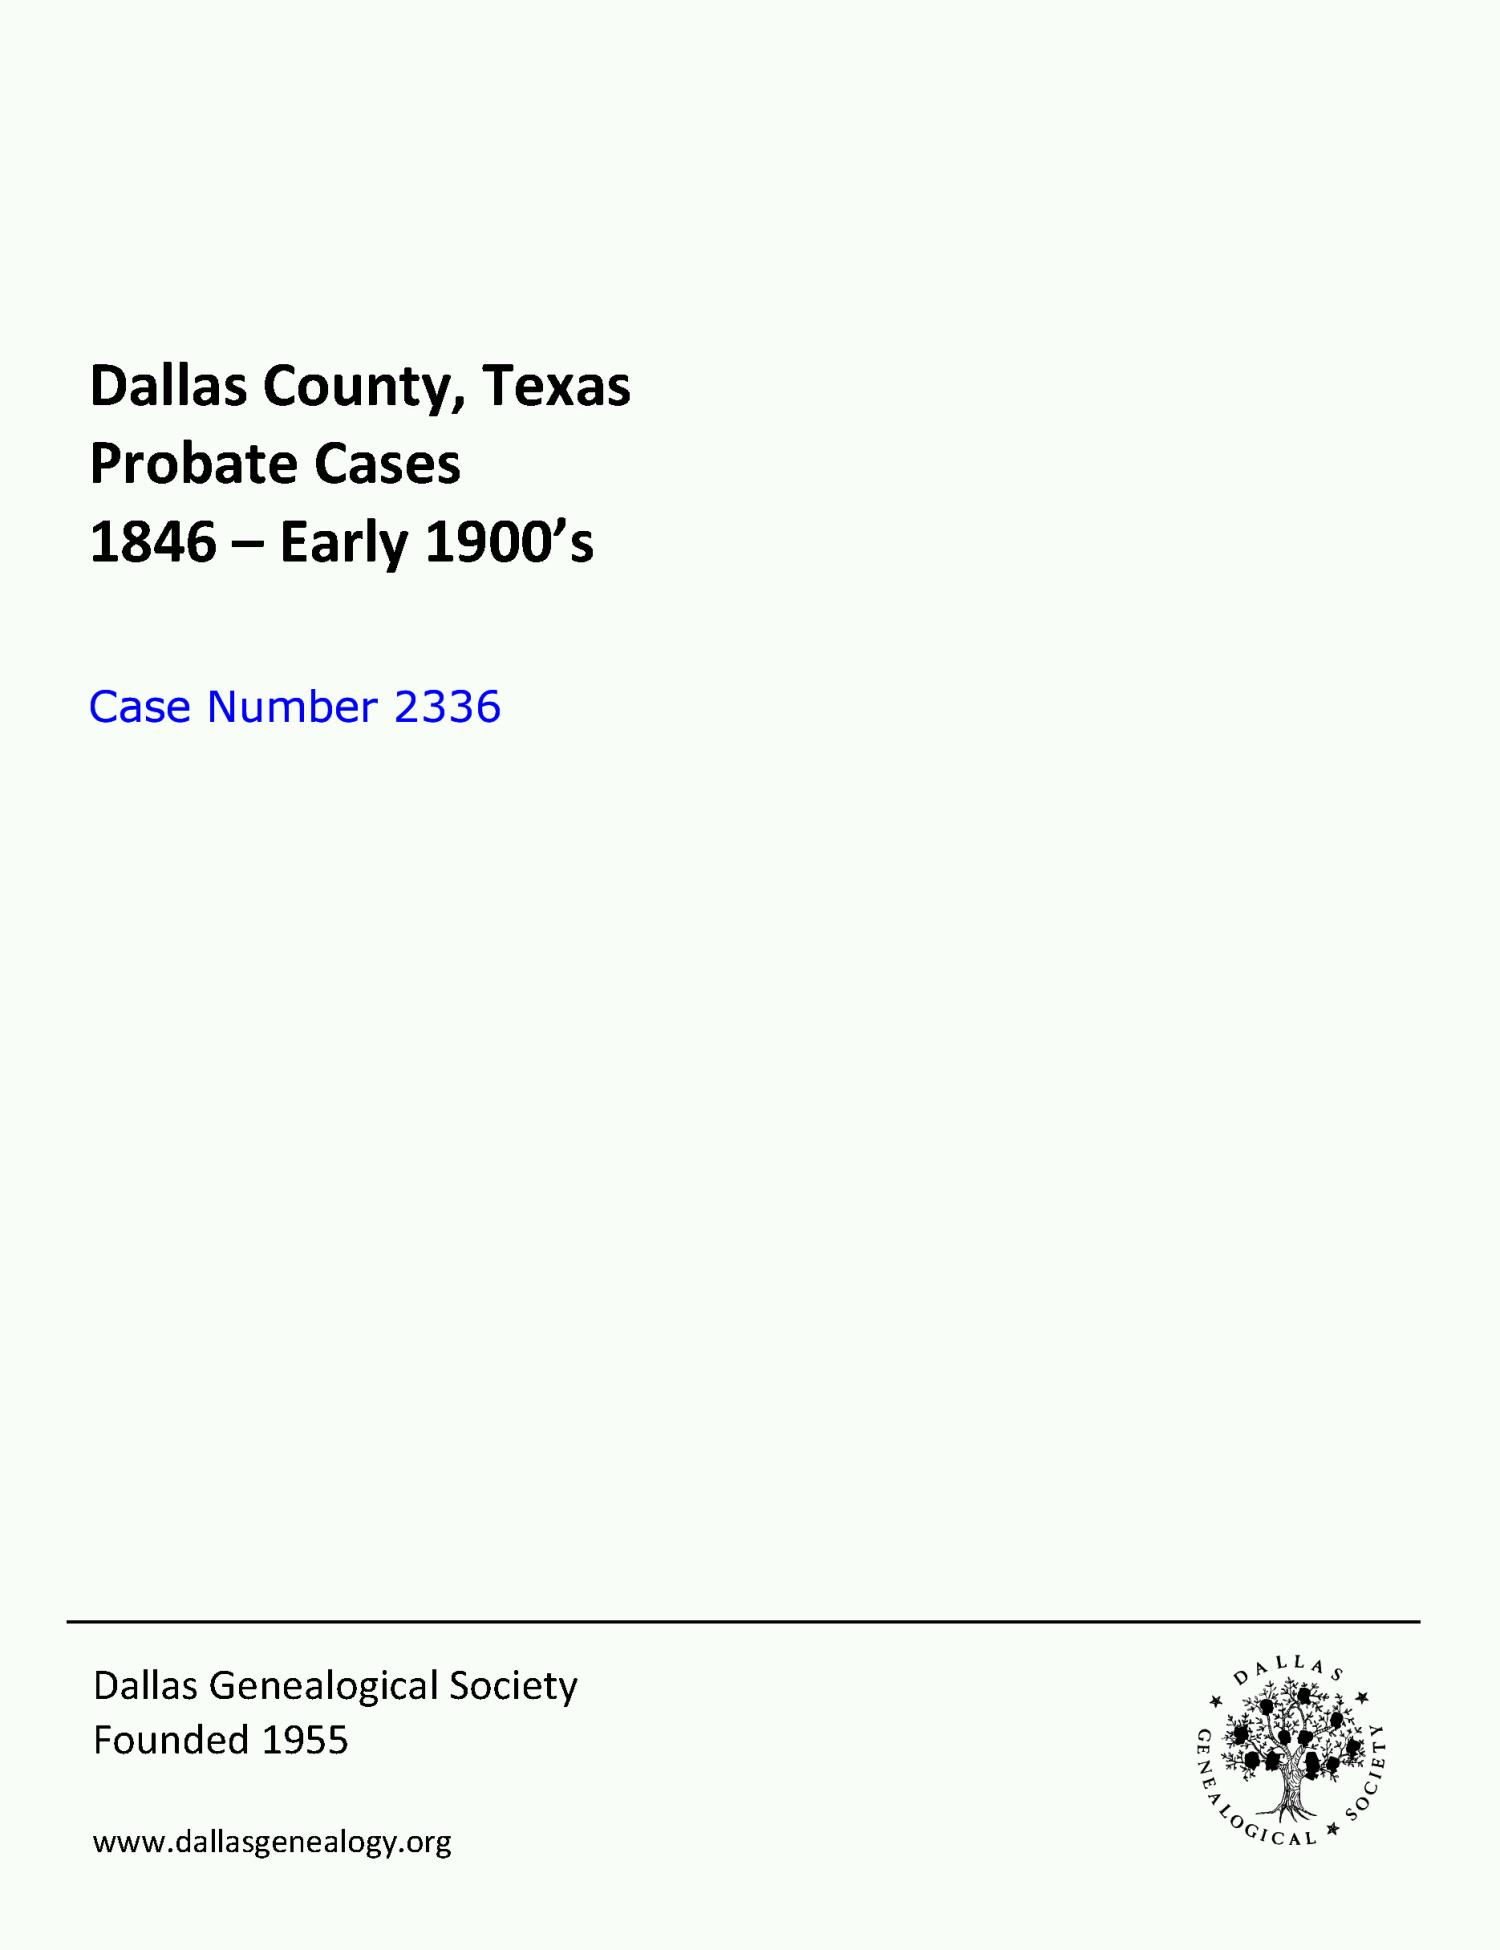 Dallas County Probate Case 2336: Potter, Catherine (Deceased)                                                                                                      [Sequence #]: 1 of 12